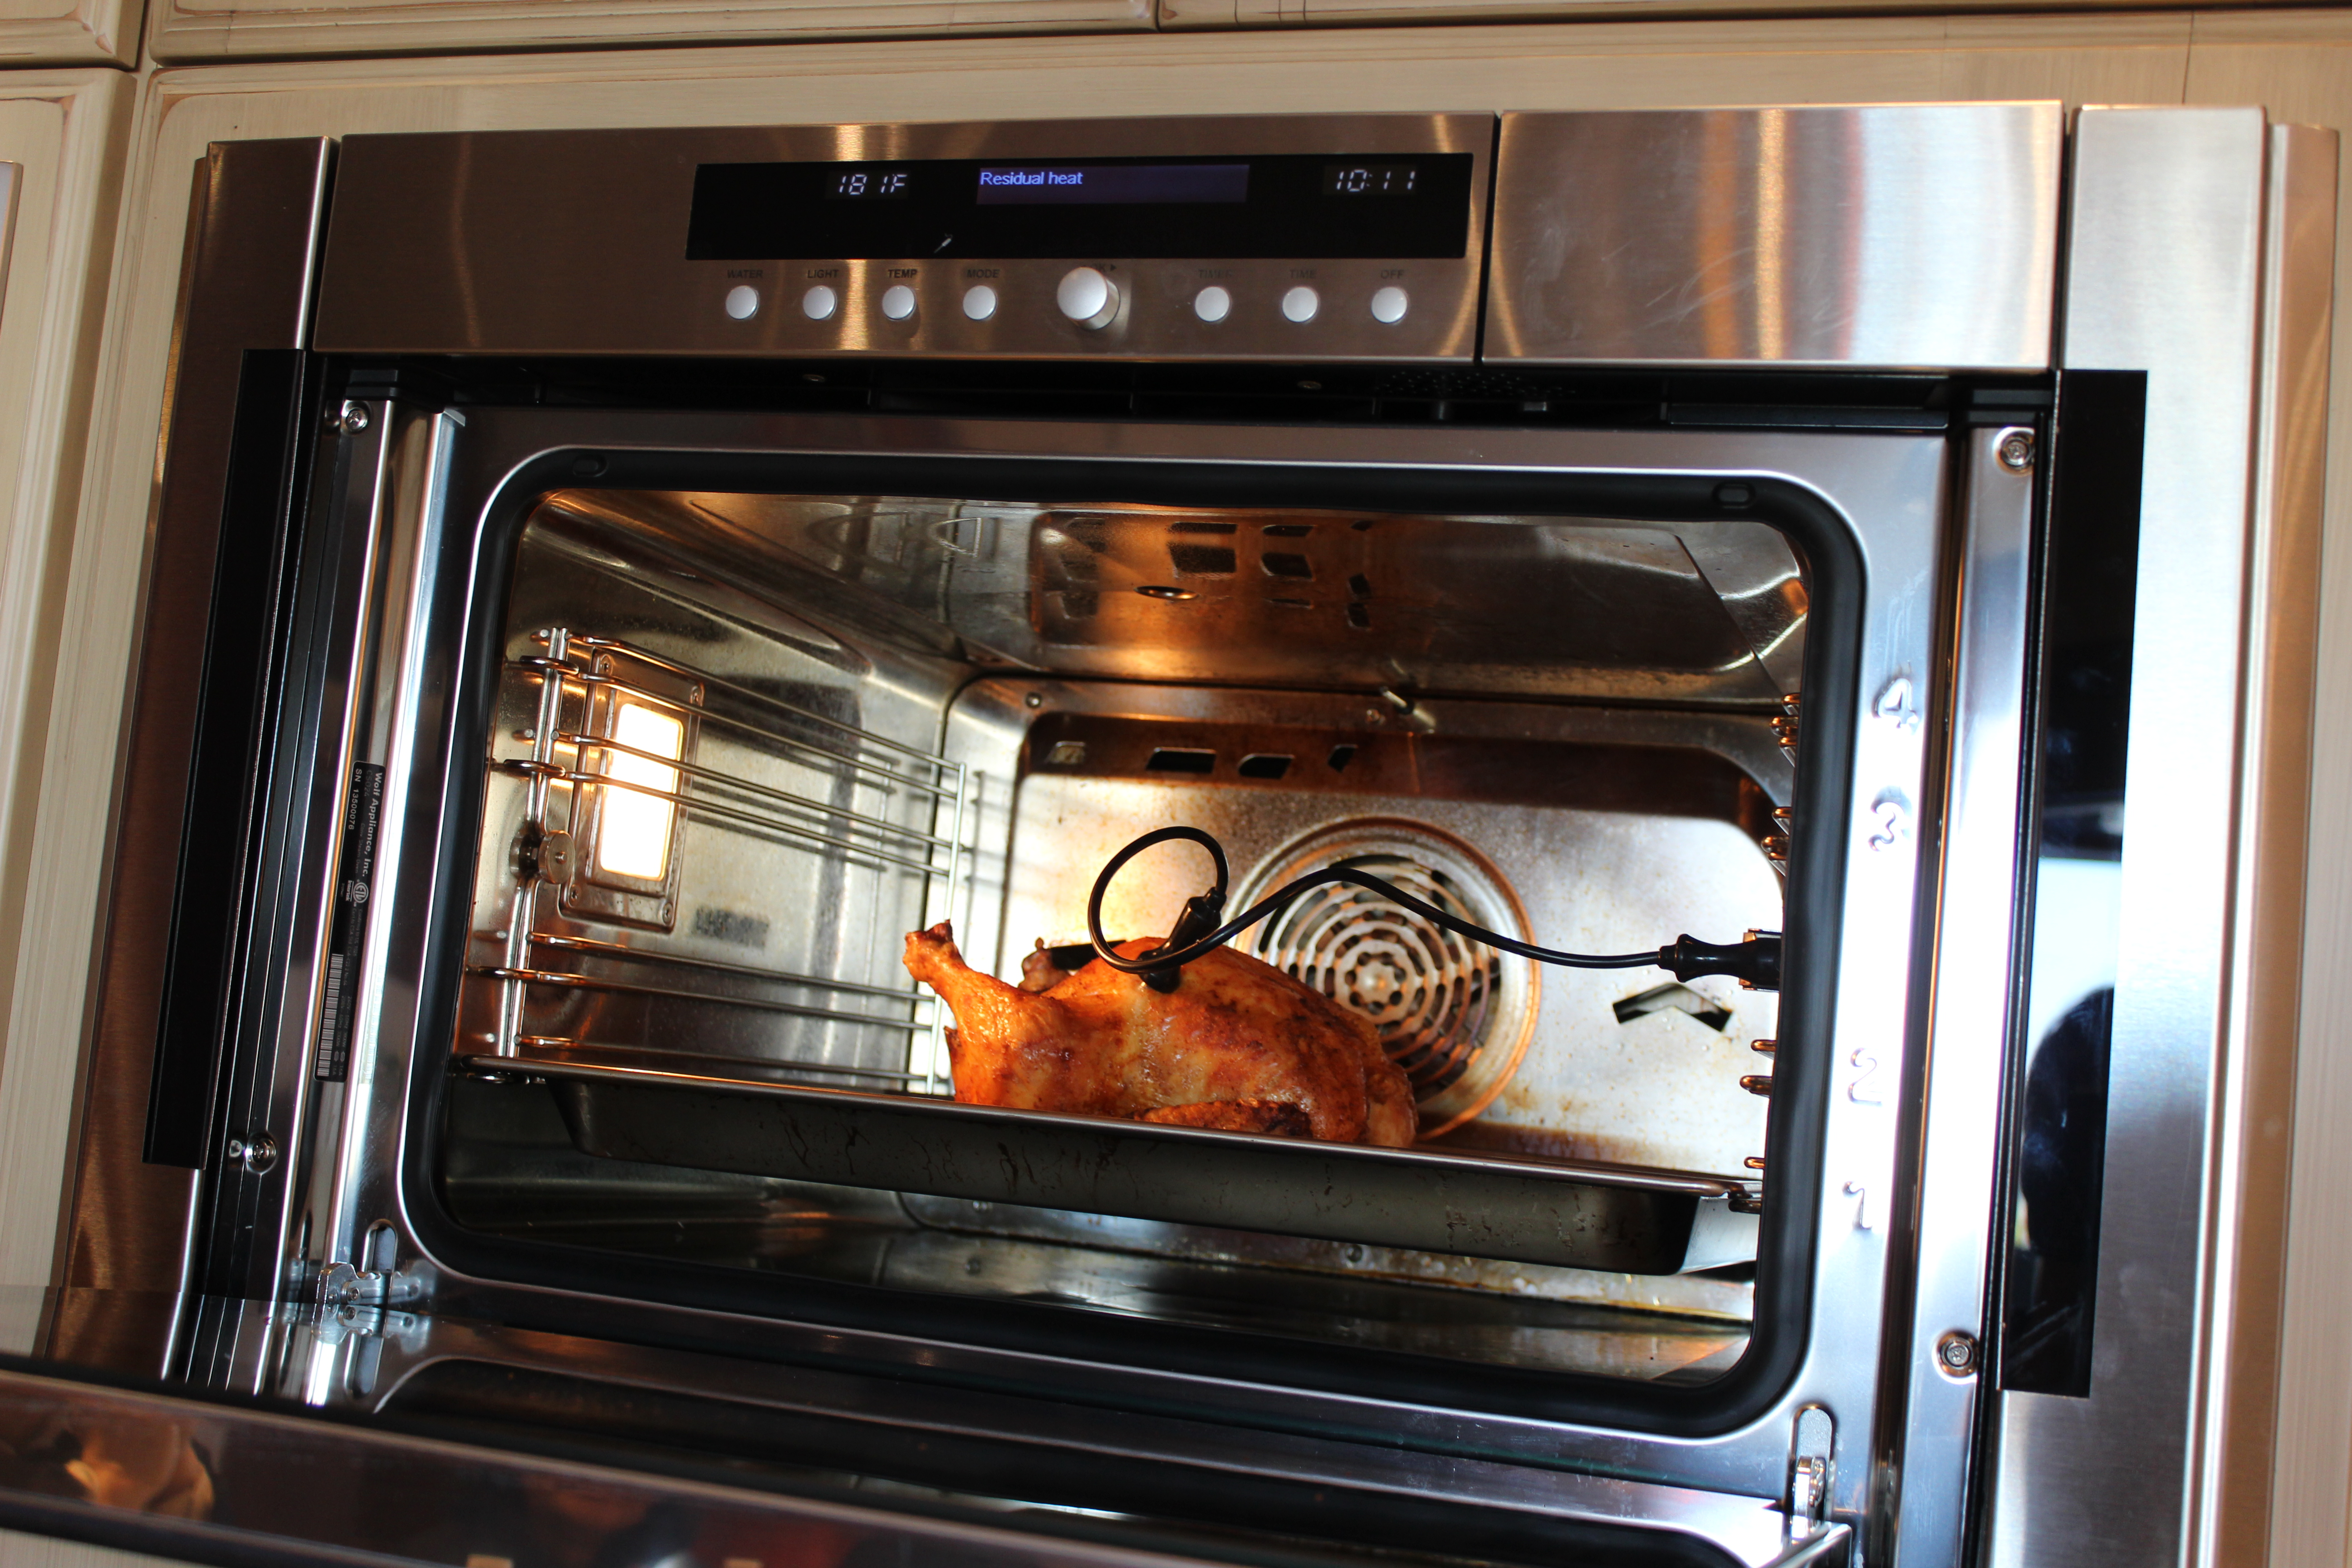 How to grill chicken in a convection microwave oven